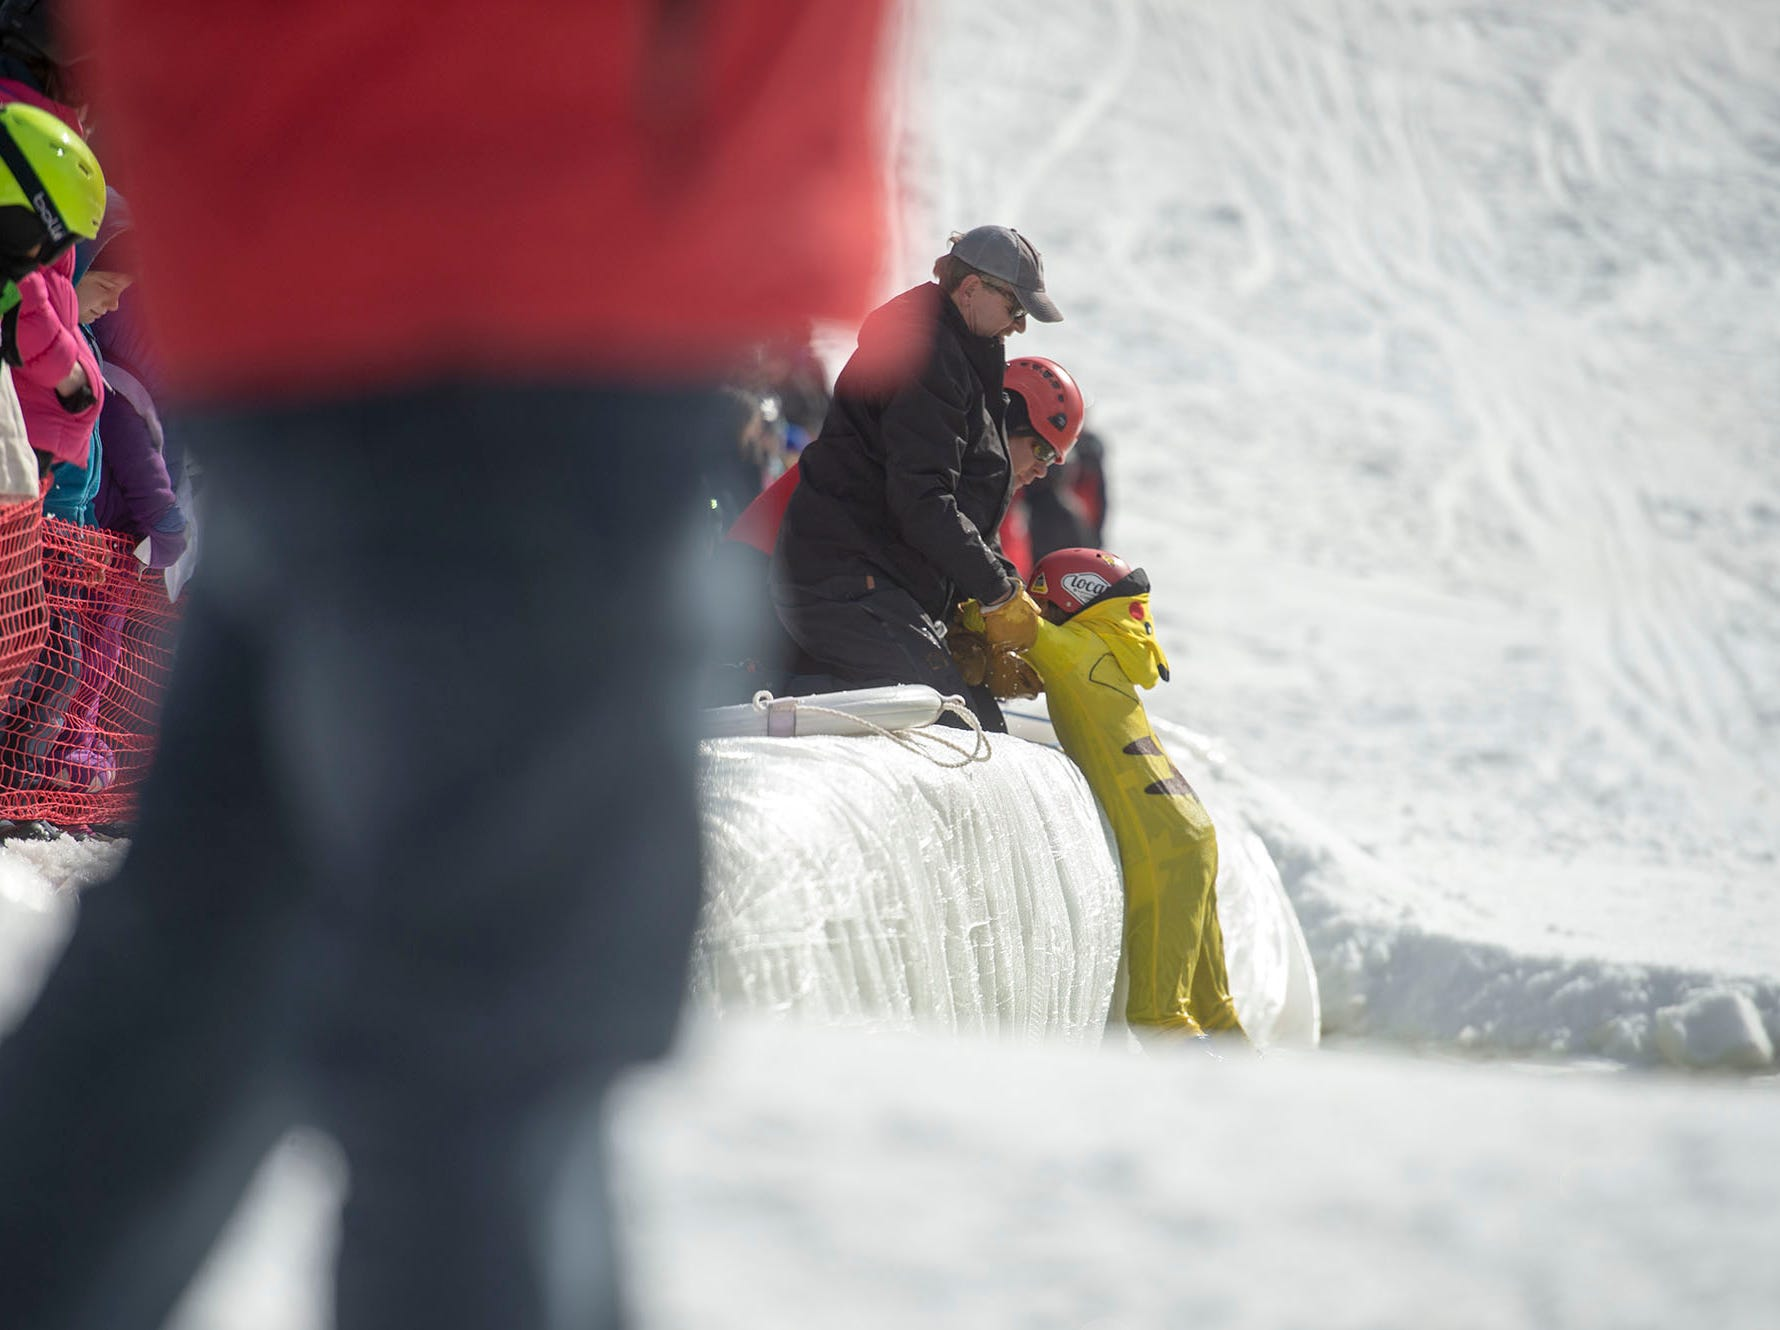 Getting out of the pond was easier if the participant was smaller at Roundtop Mountain Resort on Saturday, March 16, 2019.